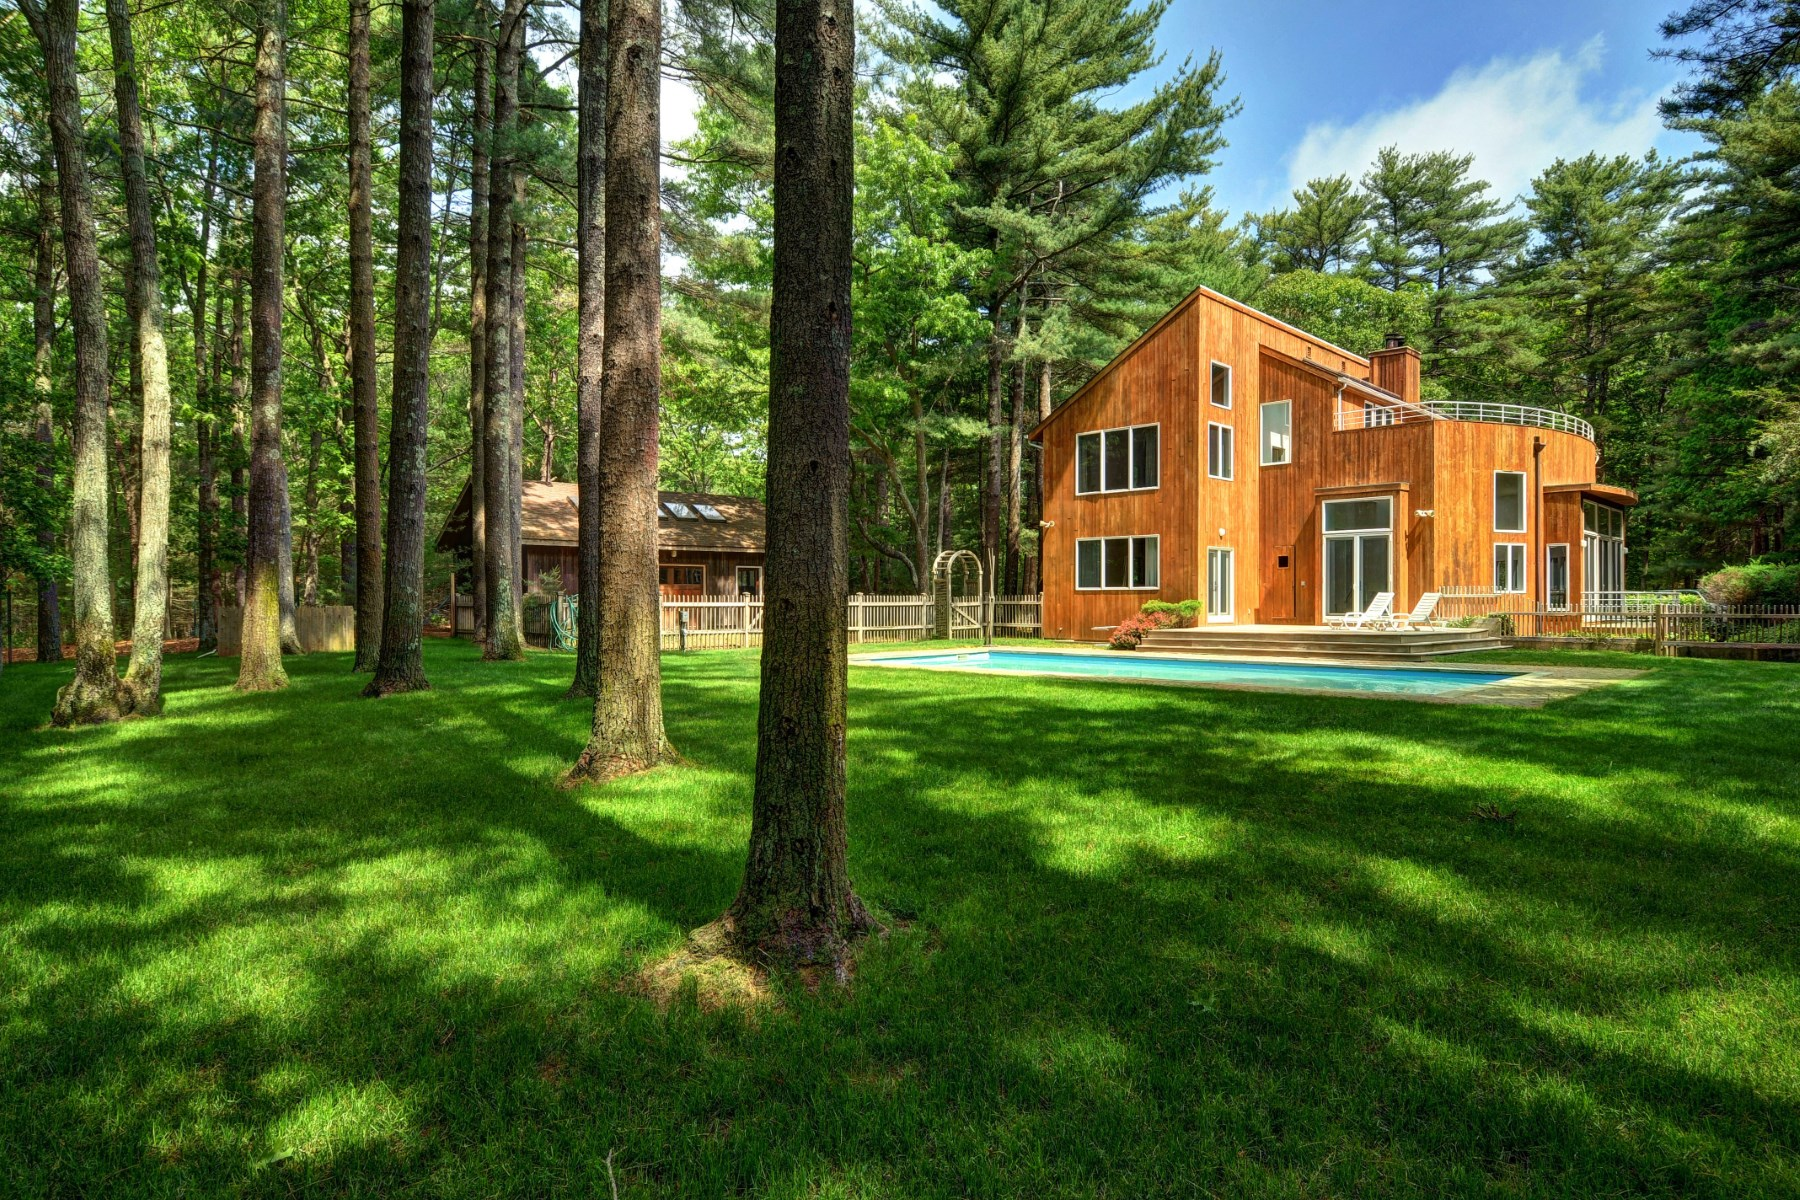 Single Family Home for Sale at Contemporary on 2.5 Private Acres 31 Northwest Landing Road East Hampton, New York 11937 United States